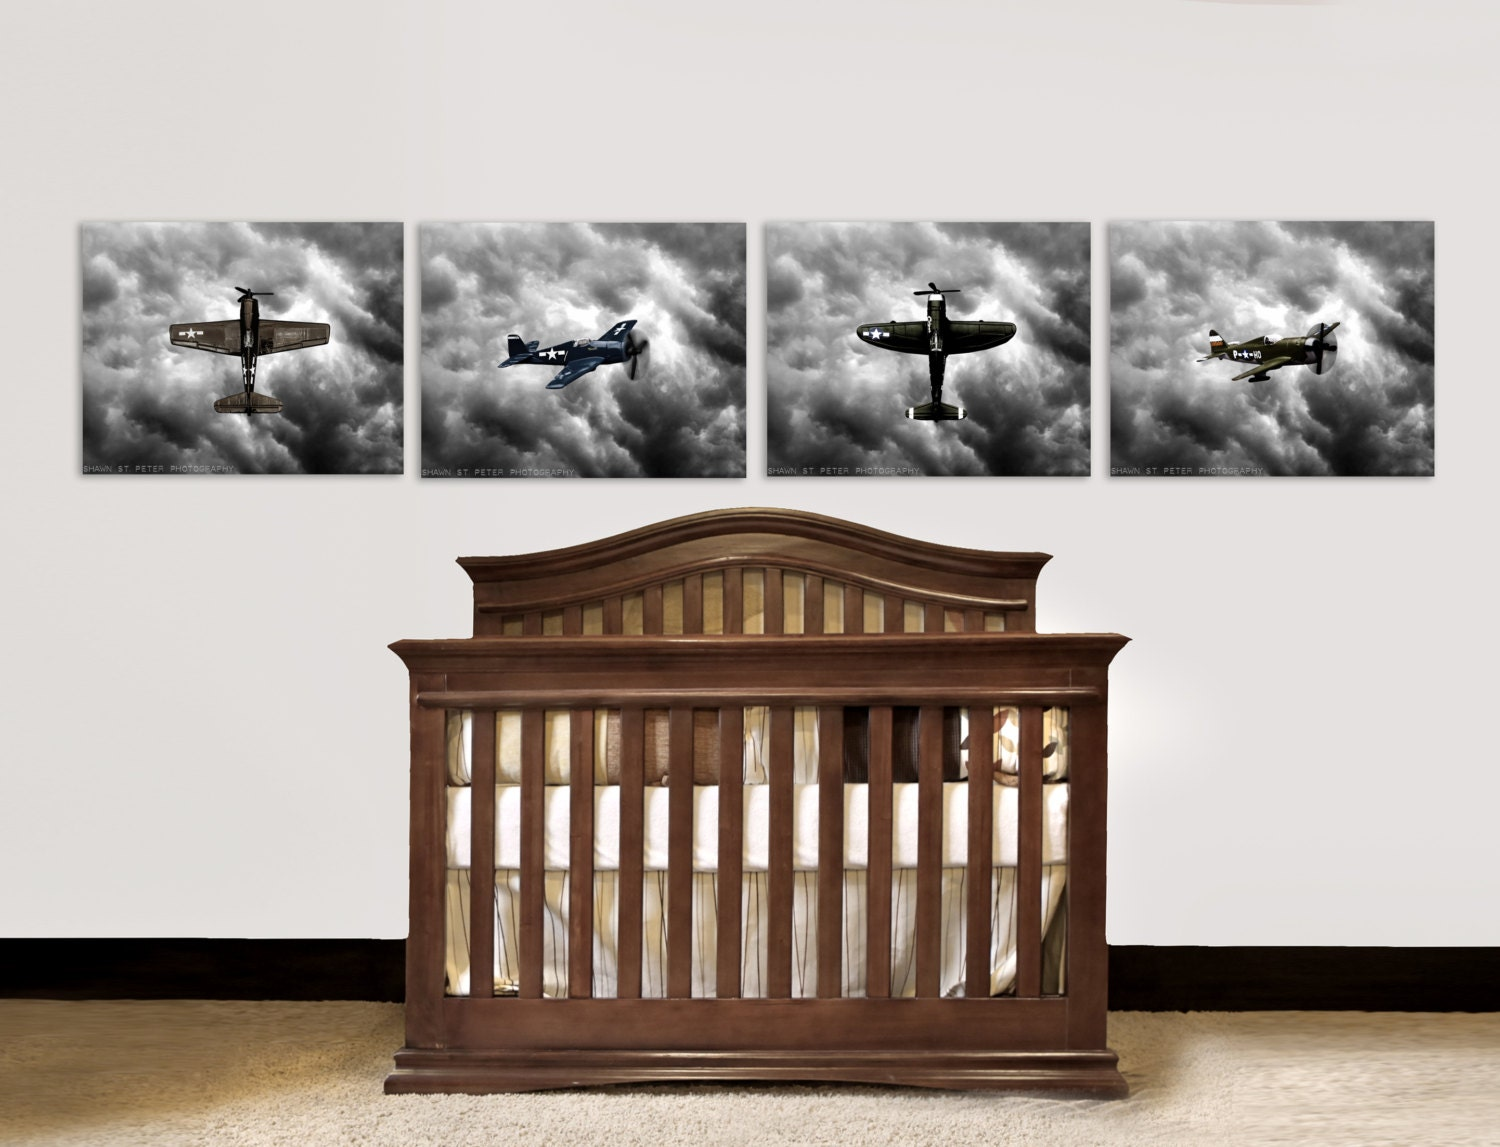 Nursery decor vintage airplanes baby room ideas by Vintage airplane decor for nursery